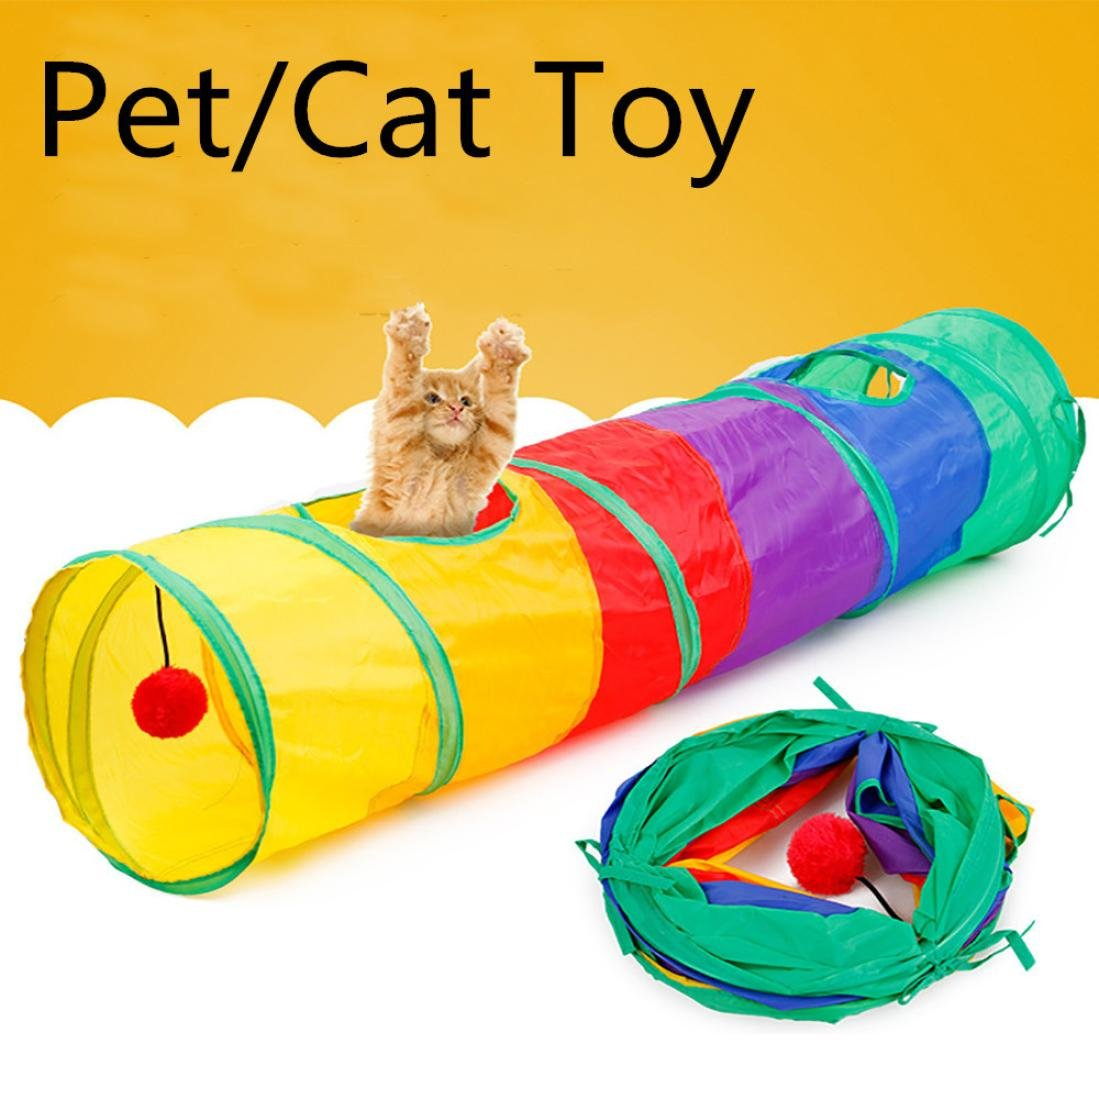 NewKelly Pet Tunnel Cat Printed Green Crinkly Kitten Tunnel Toy With Ball Play Fun Toy by NewKelly (Image #3)